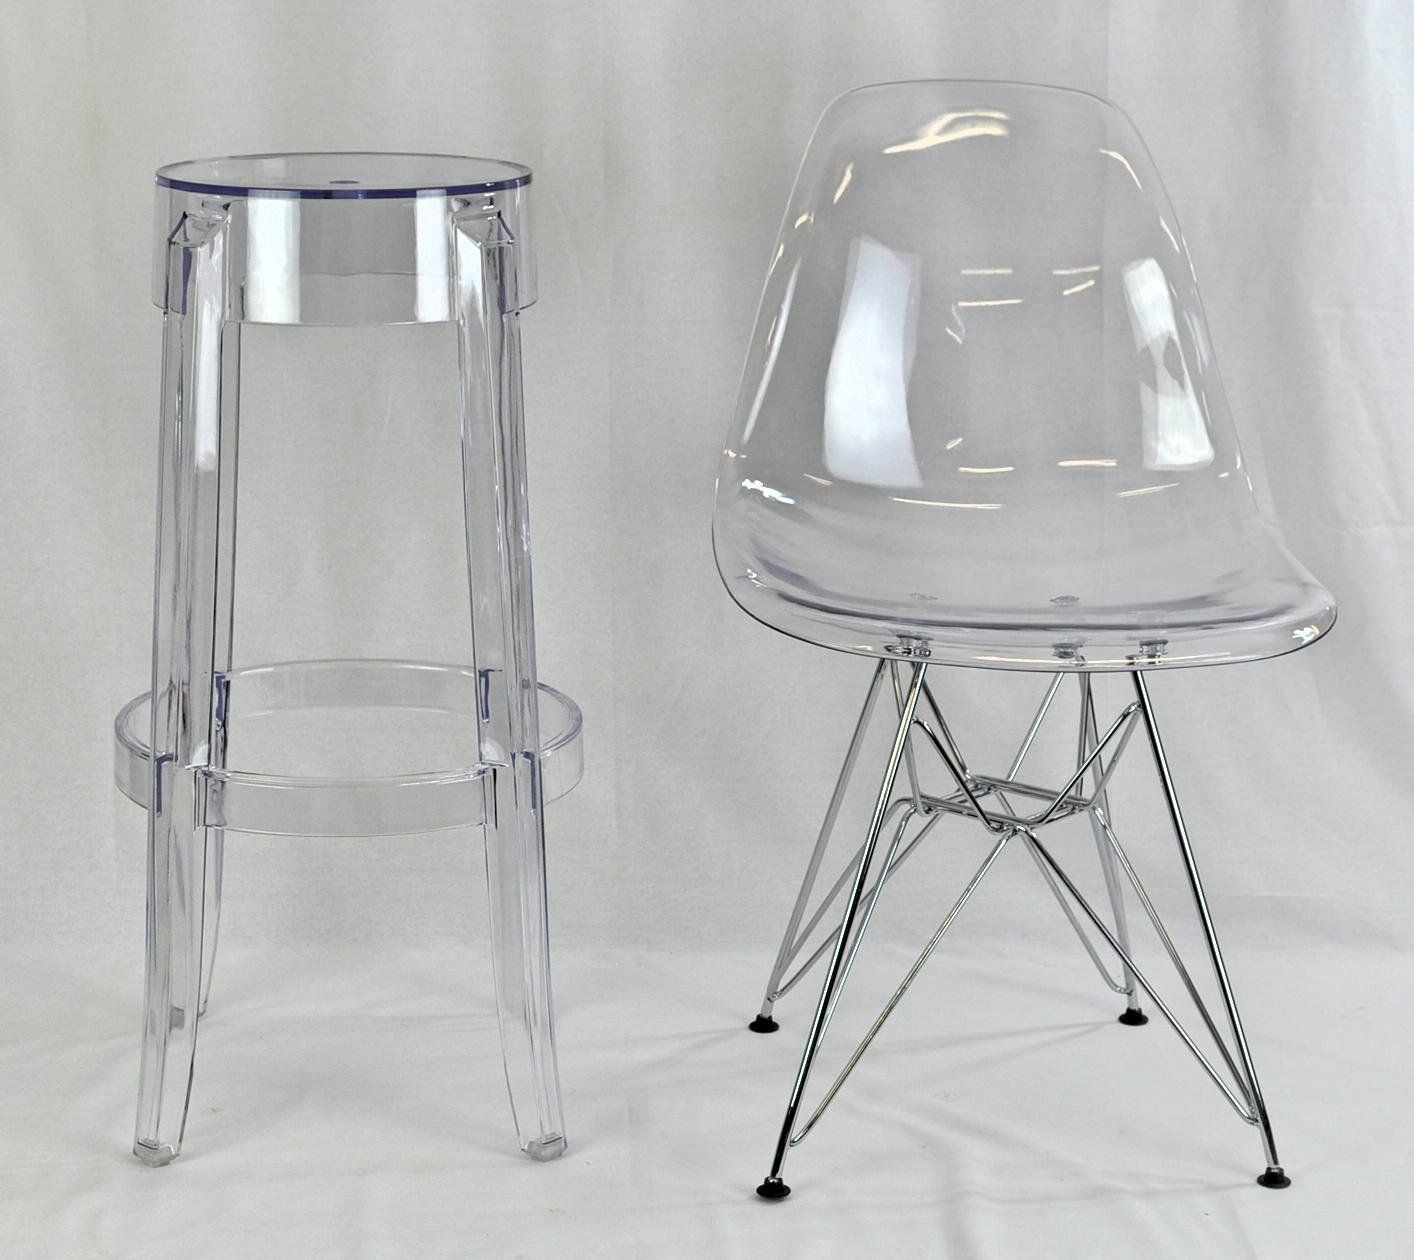 Beaudelaire Transpa Pc Stylish Designer Bar Stools Two Chairs Co